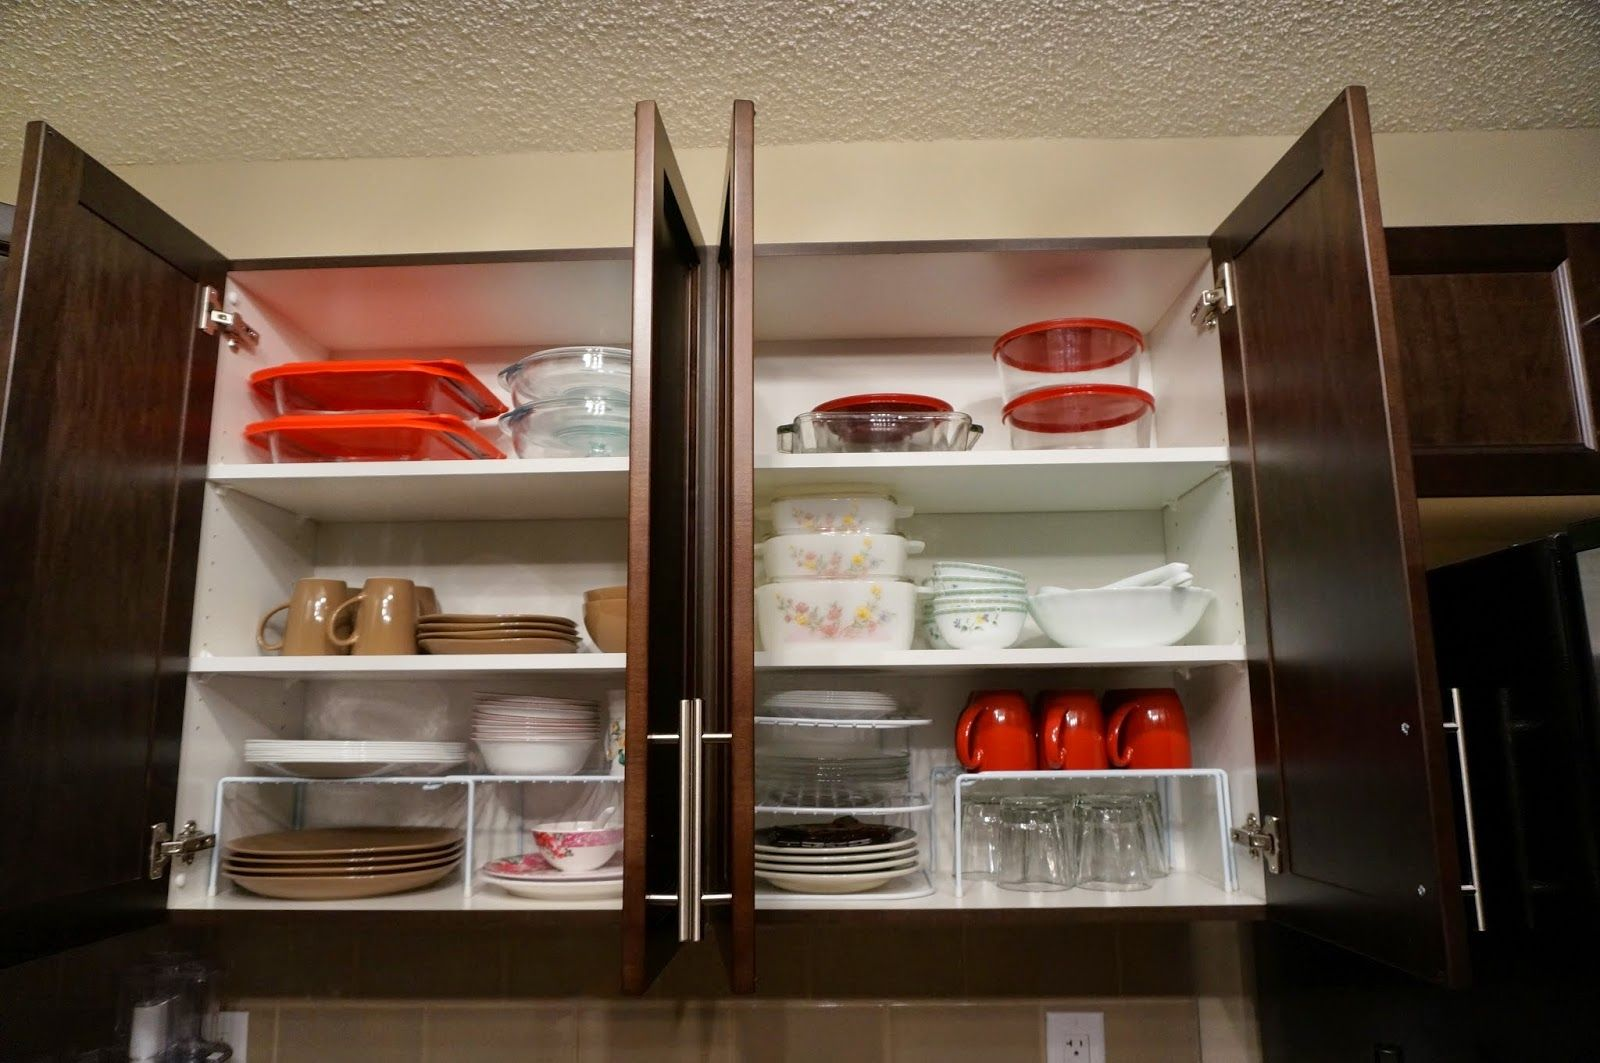 Best Way To Organize Small Kitchen Cabinets